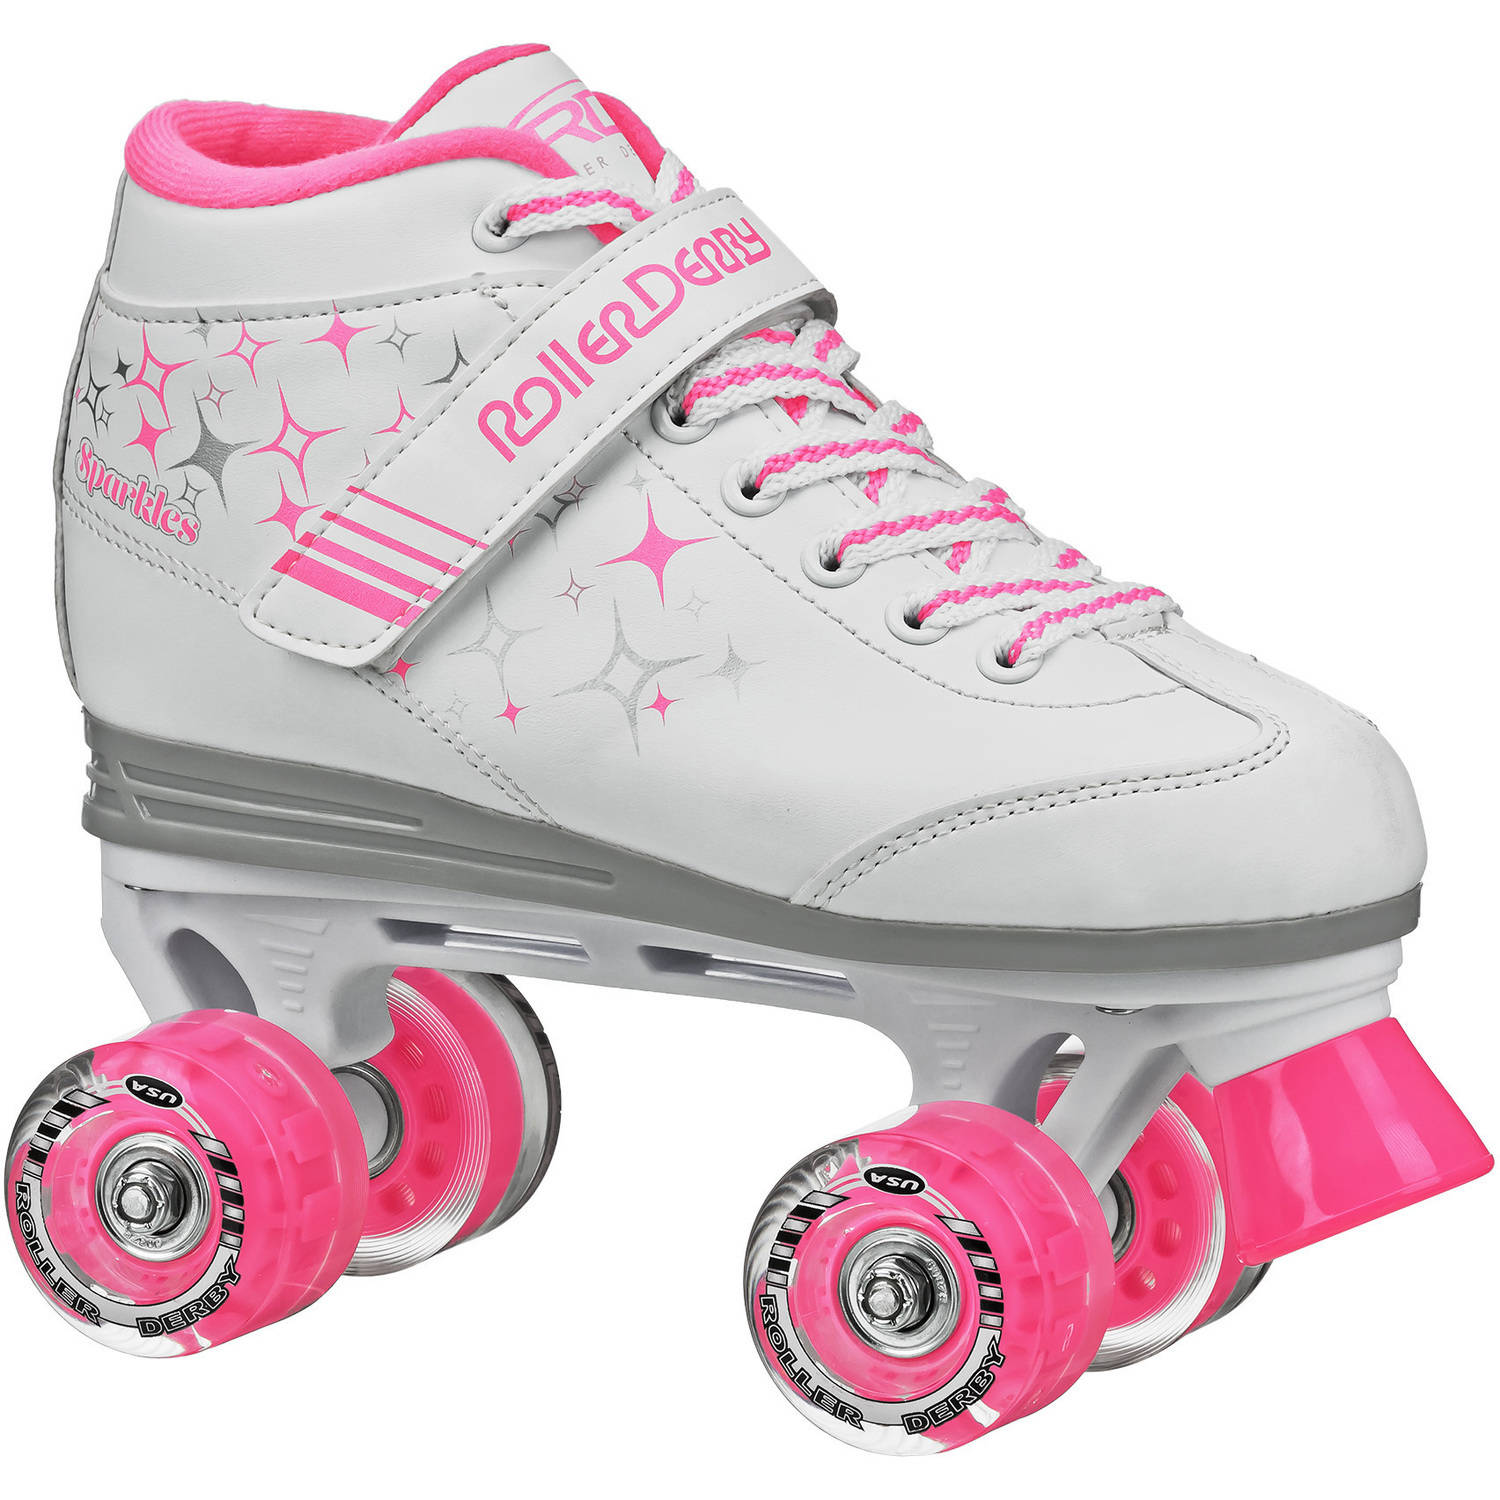 Roller Derby Sparkle Girls' Outdoor Roller Skates